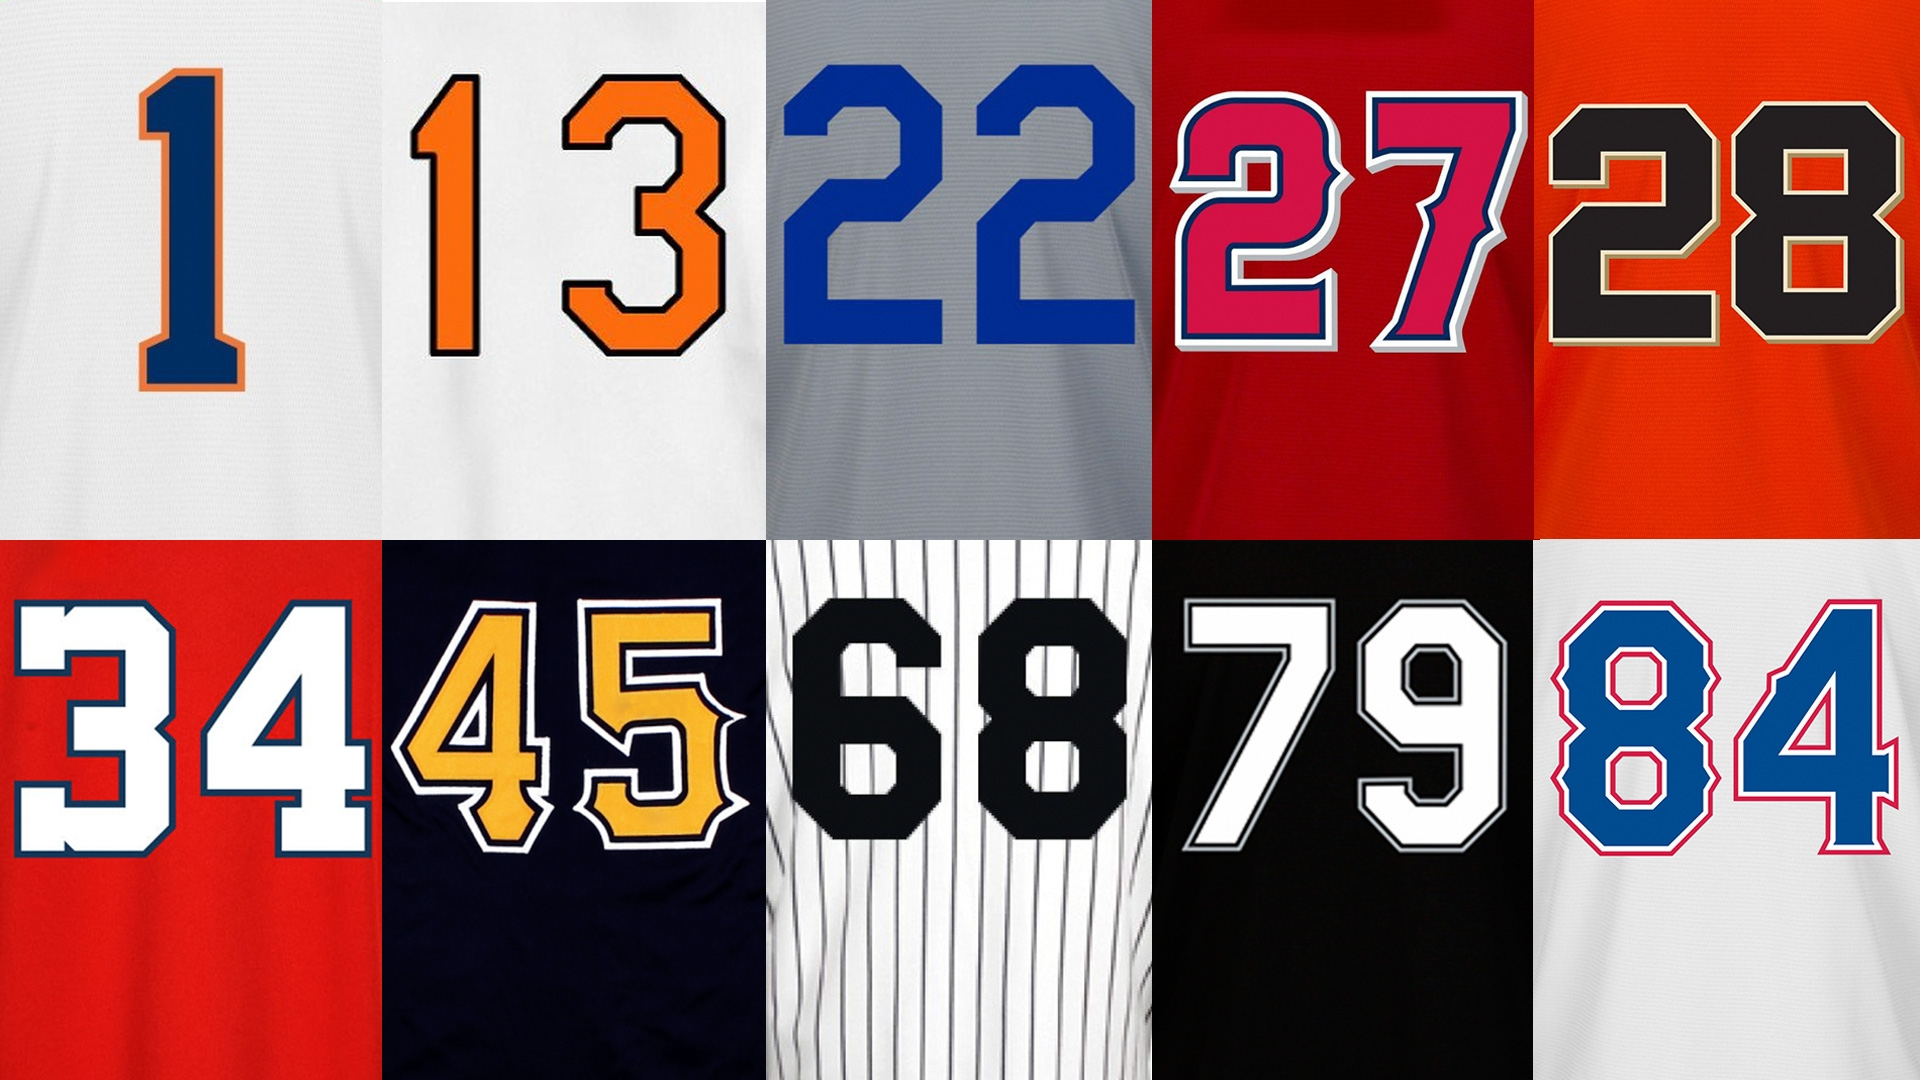 nba players with the jersey number 31 - Online Marketing ...